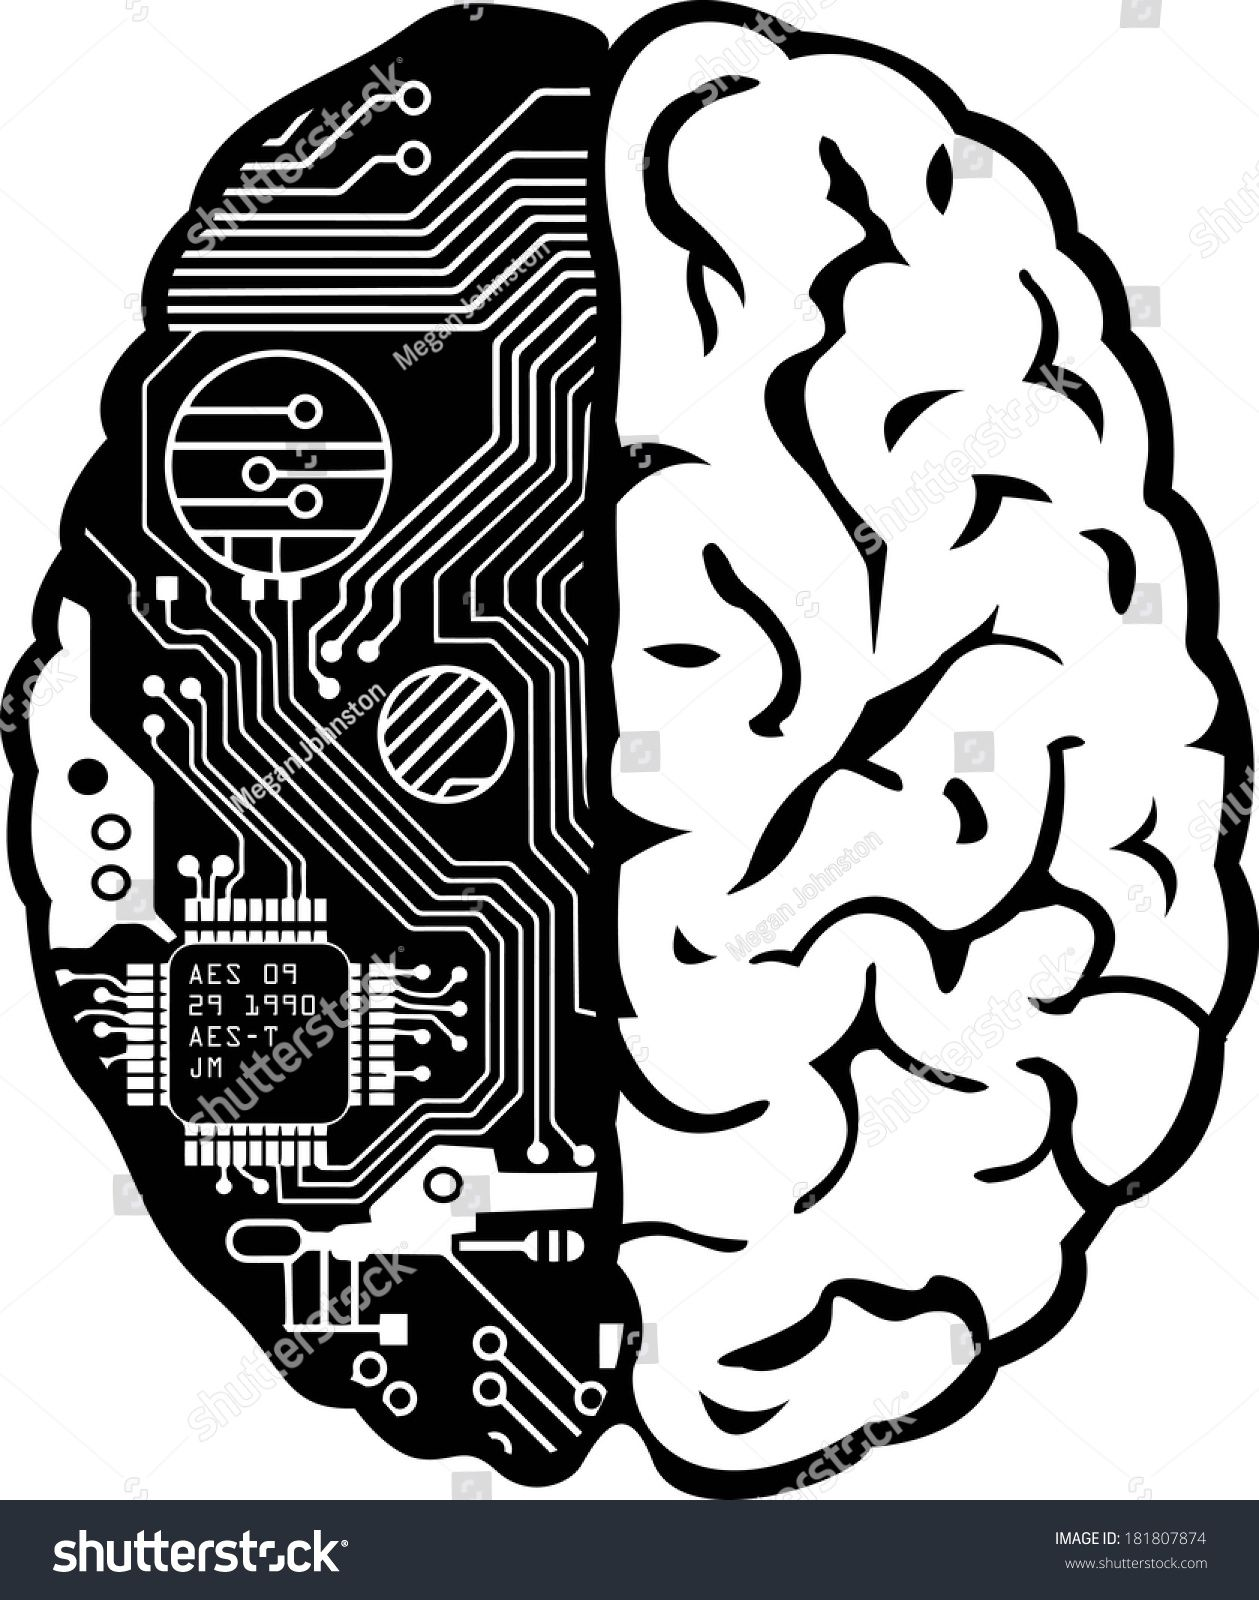 Brain filled black clipart image black and white stock Black and White Human Brain with Computer Circuit Board Vector ... image black and white stock